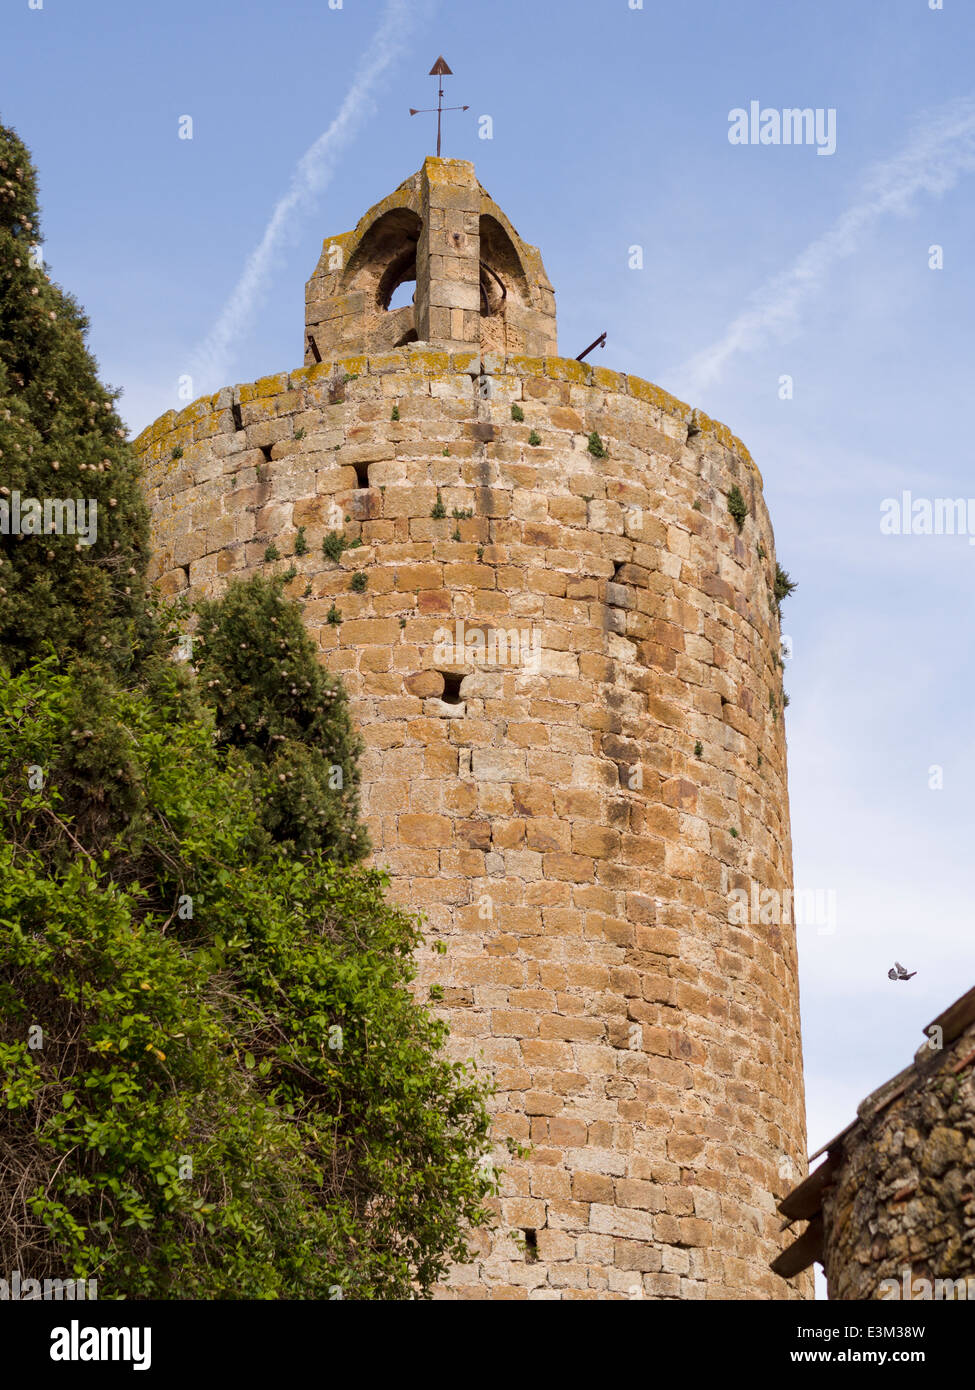 Pals watch tower an ancient fortification. An old stone tower is an ongoing reminder of the fortifications in this - Stock Image